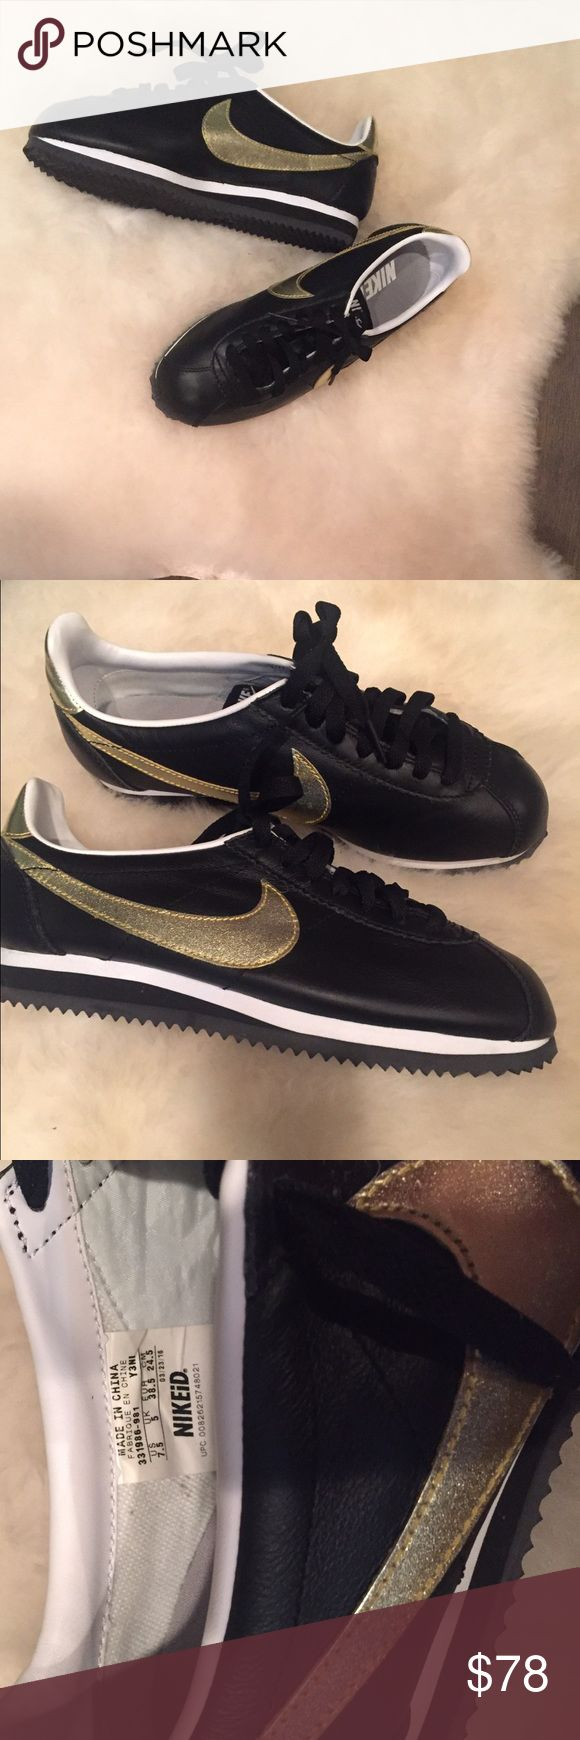 Nike Cortez iD  NWOT Old school kicks with flare! Black Nike Cortez iD sneakers with Gold swoosh. Brand new, never worn (ordered too small and can't return b/c they are custom! ) Make me an offer! Nike Shoes Sneakers